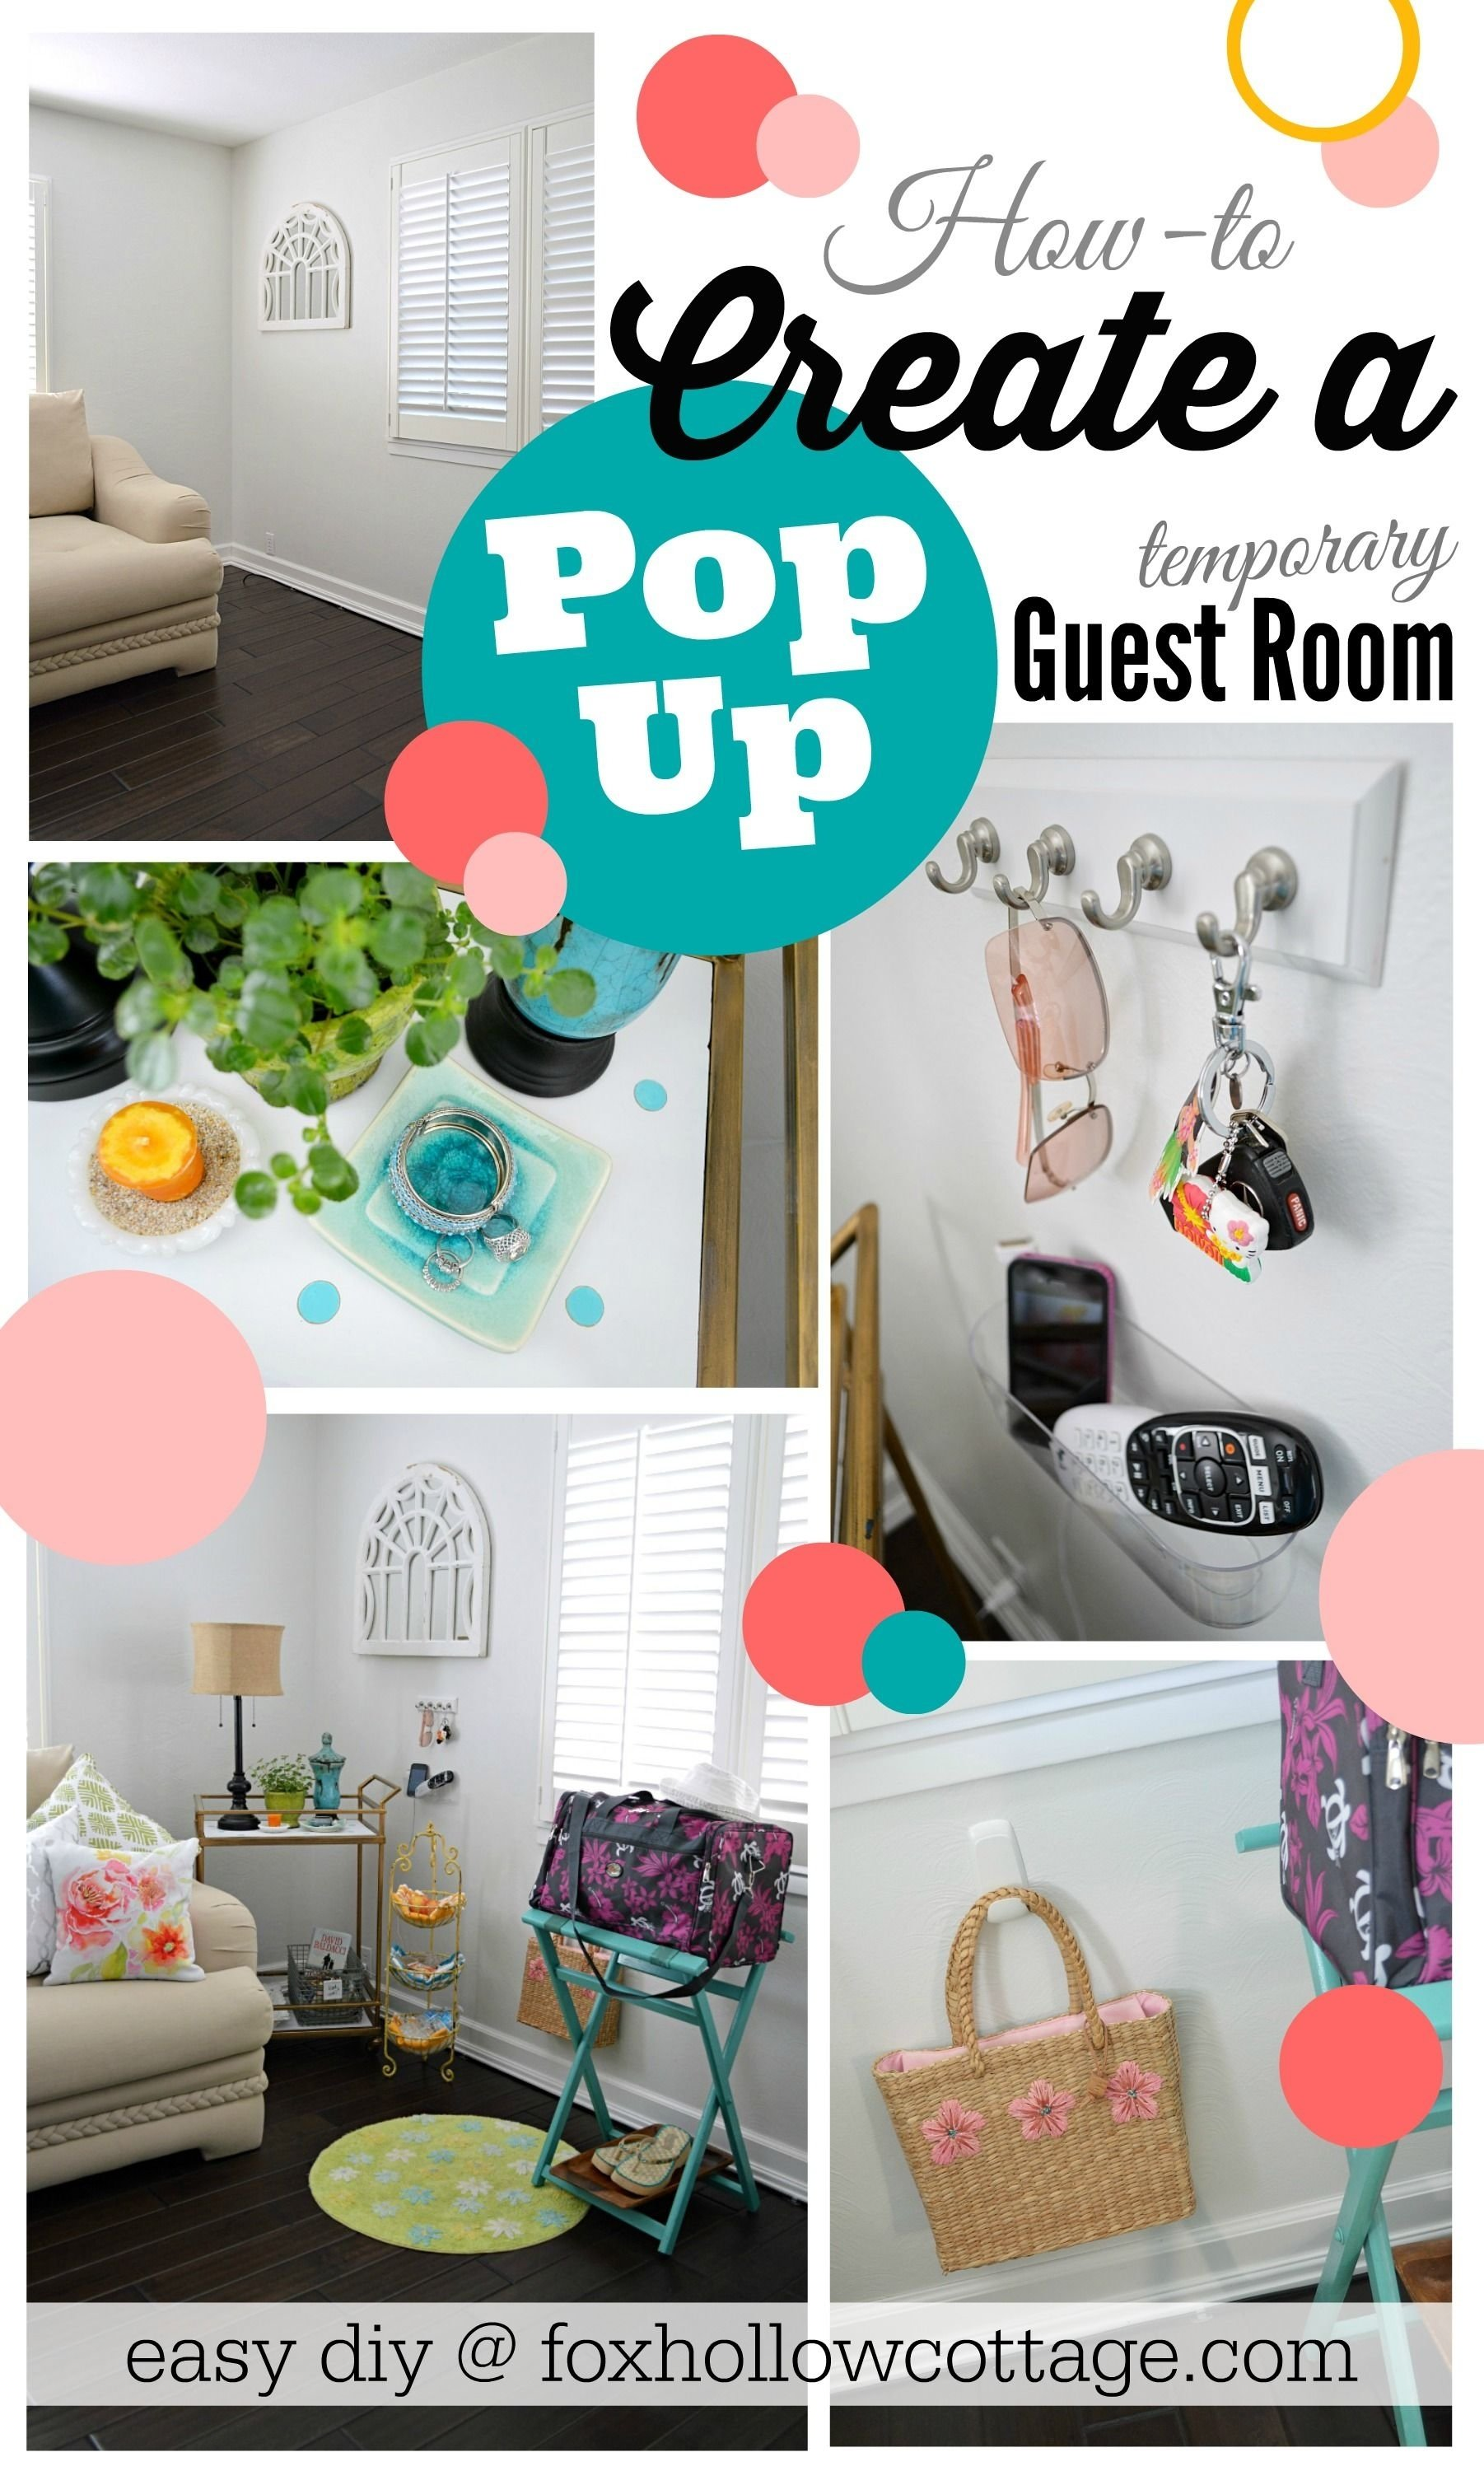 10 Best Hostess Gift Ideas For House Guests diy pop up guest room room and house 2021